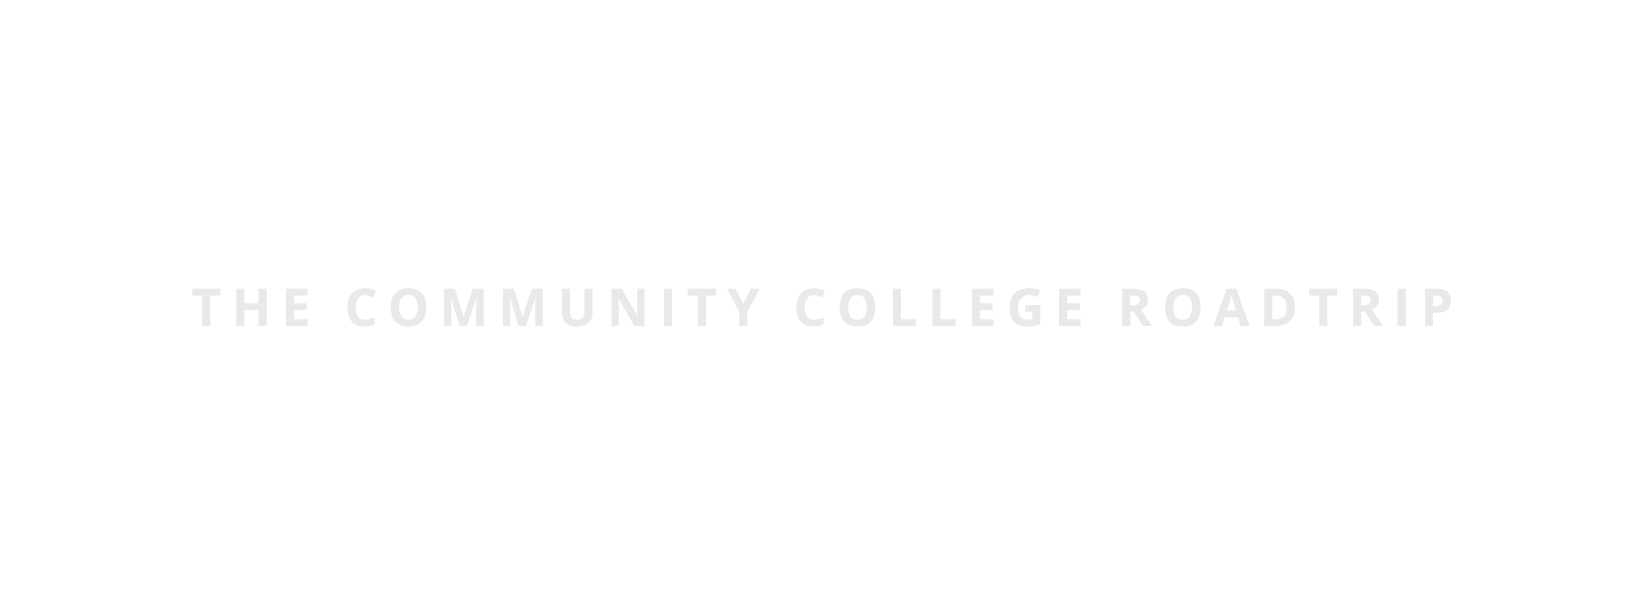 Community College Roadtrip